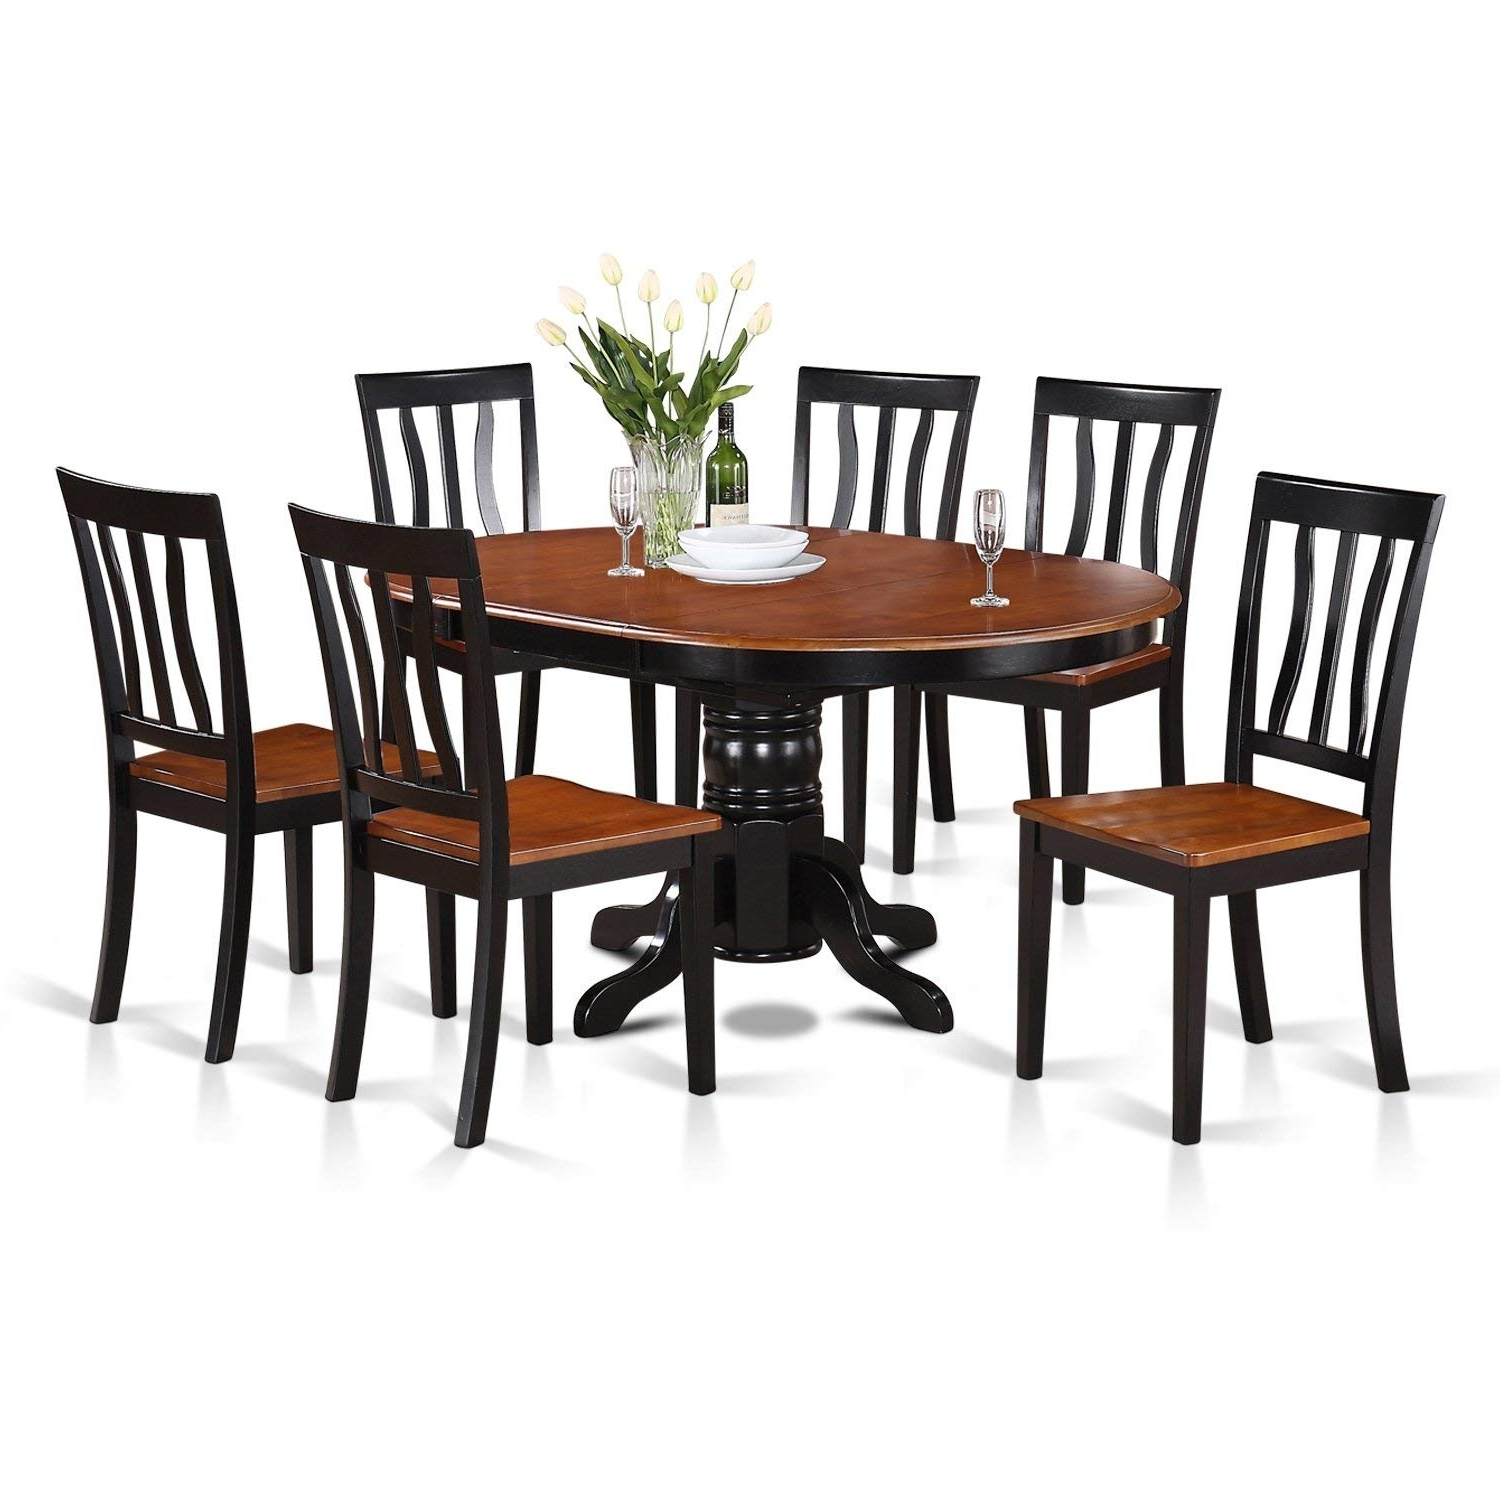 Fashionable Jaxon 5 Piece Extension Round Dining Sets With Wood Chairs With Amazon: East West Furniture Avat7 Blk W 7 Piece Dining Table Set (View 8 of 25)